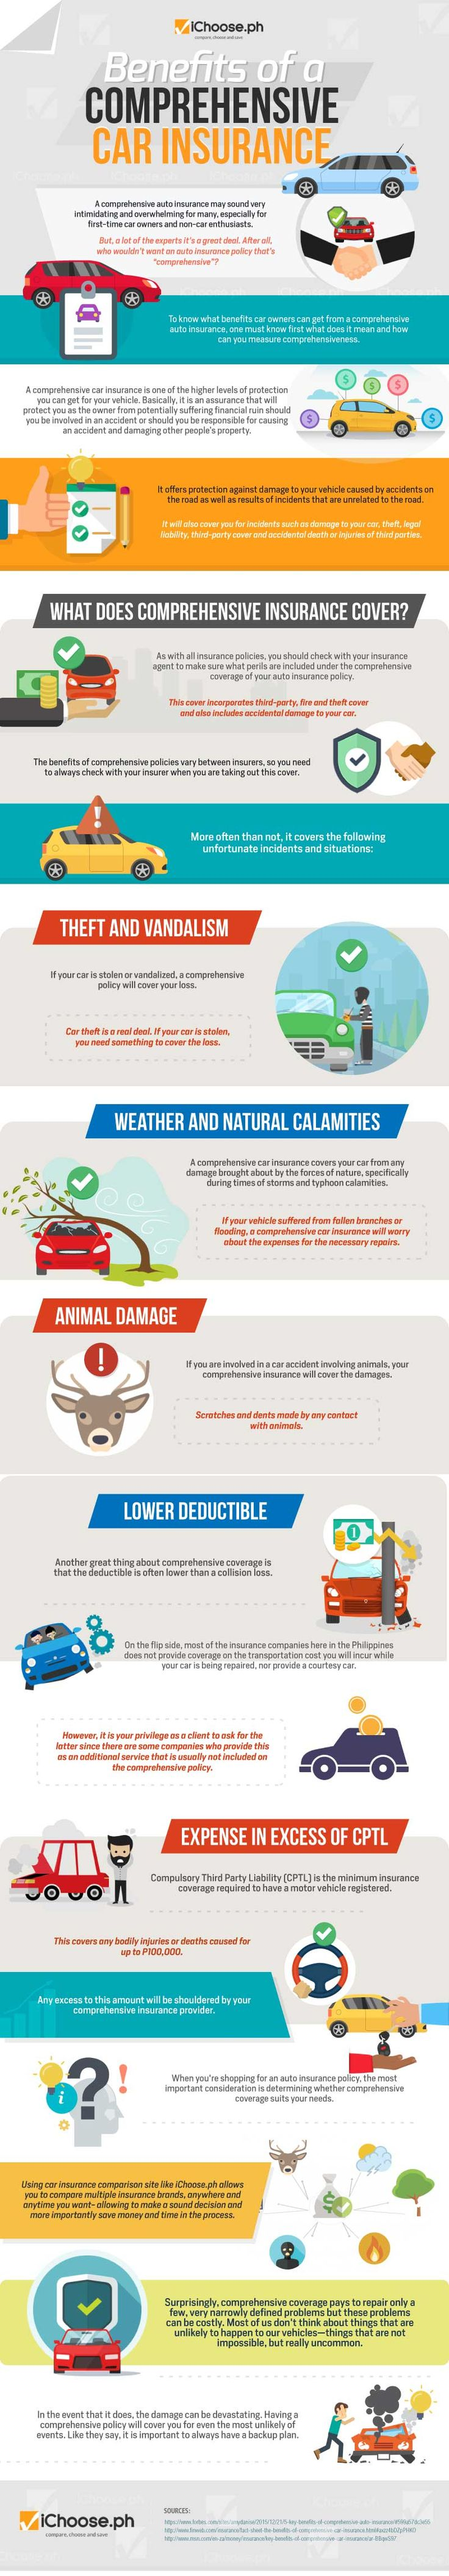 Are You A Businessman And Want To Explores The Benefits Of Your Loved Vehicles Can Enjoy Under A Comprehensive Car Insurance Then Checkout Benefits Of A Comprehensive Car Insurance For Your Personal Vehicle Via Infographic.